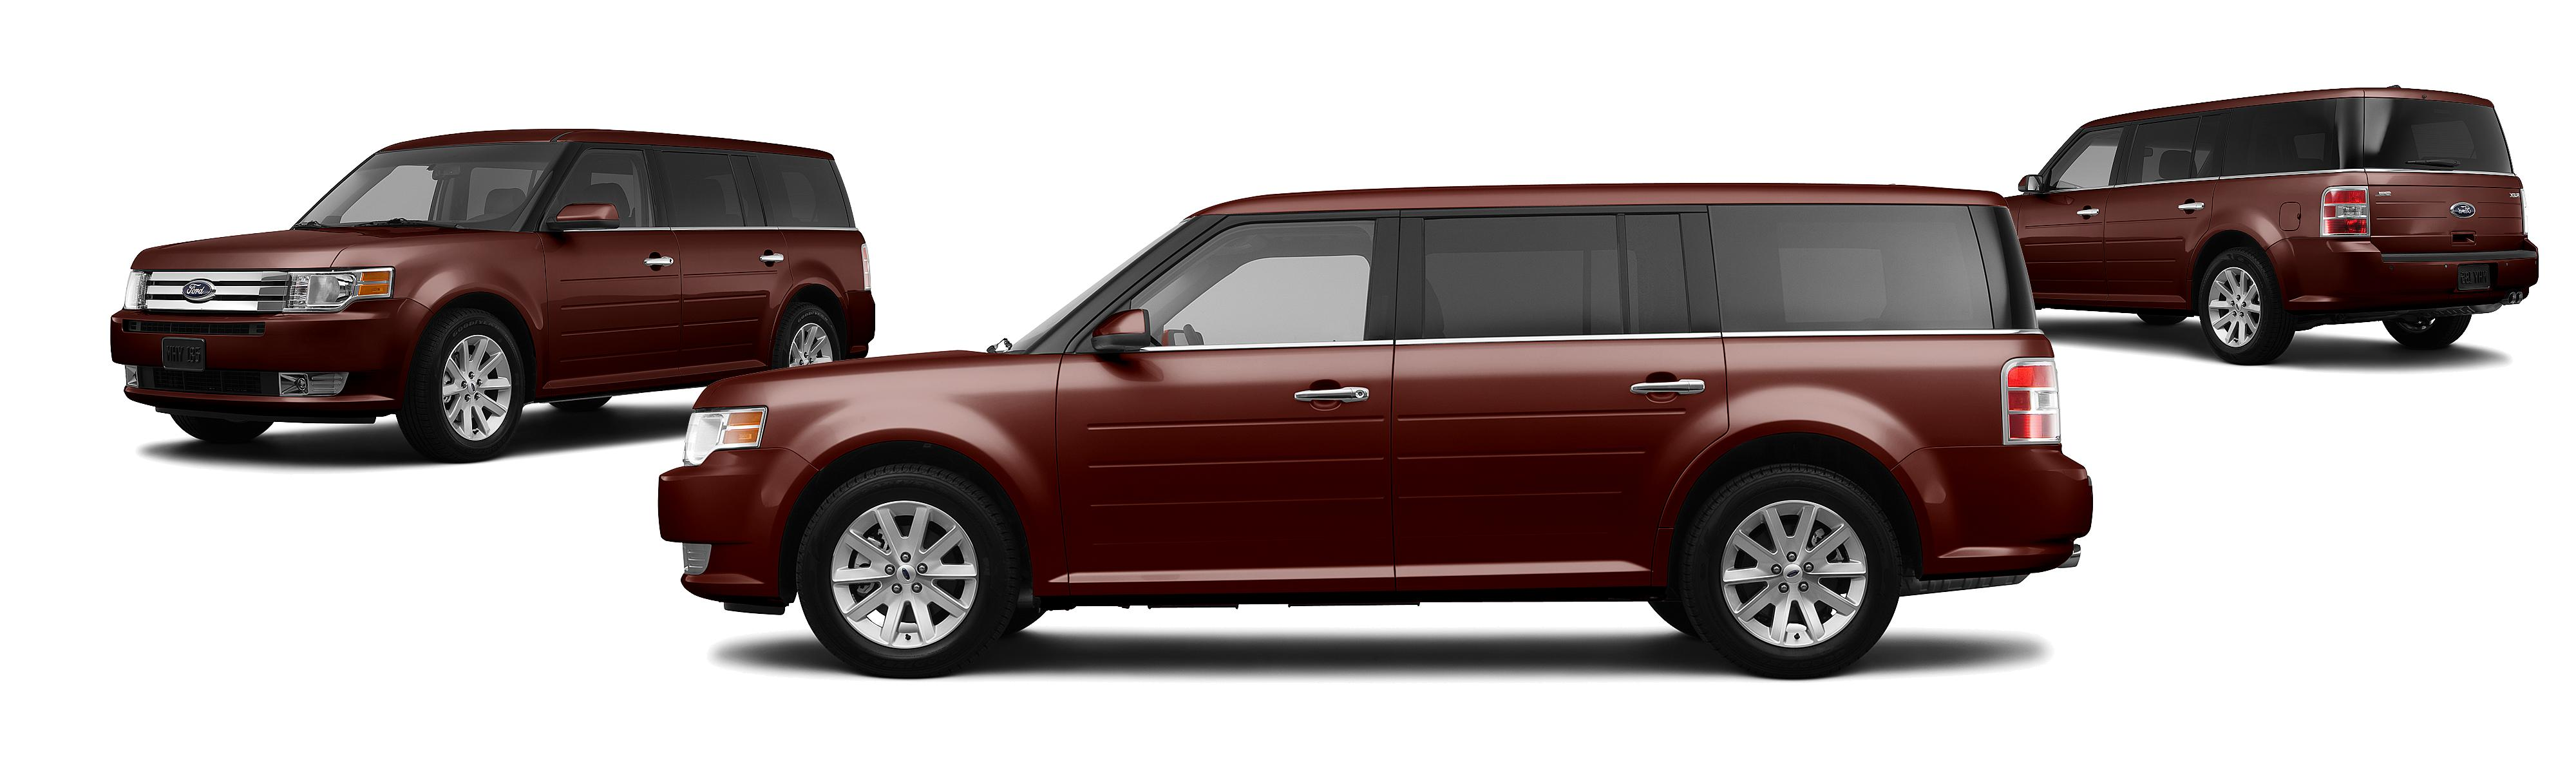 2012 ford flex awd titanium 4dr crossover research groovecar